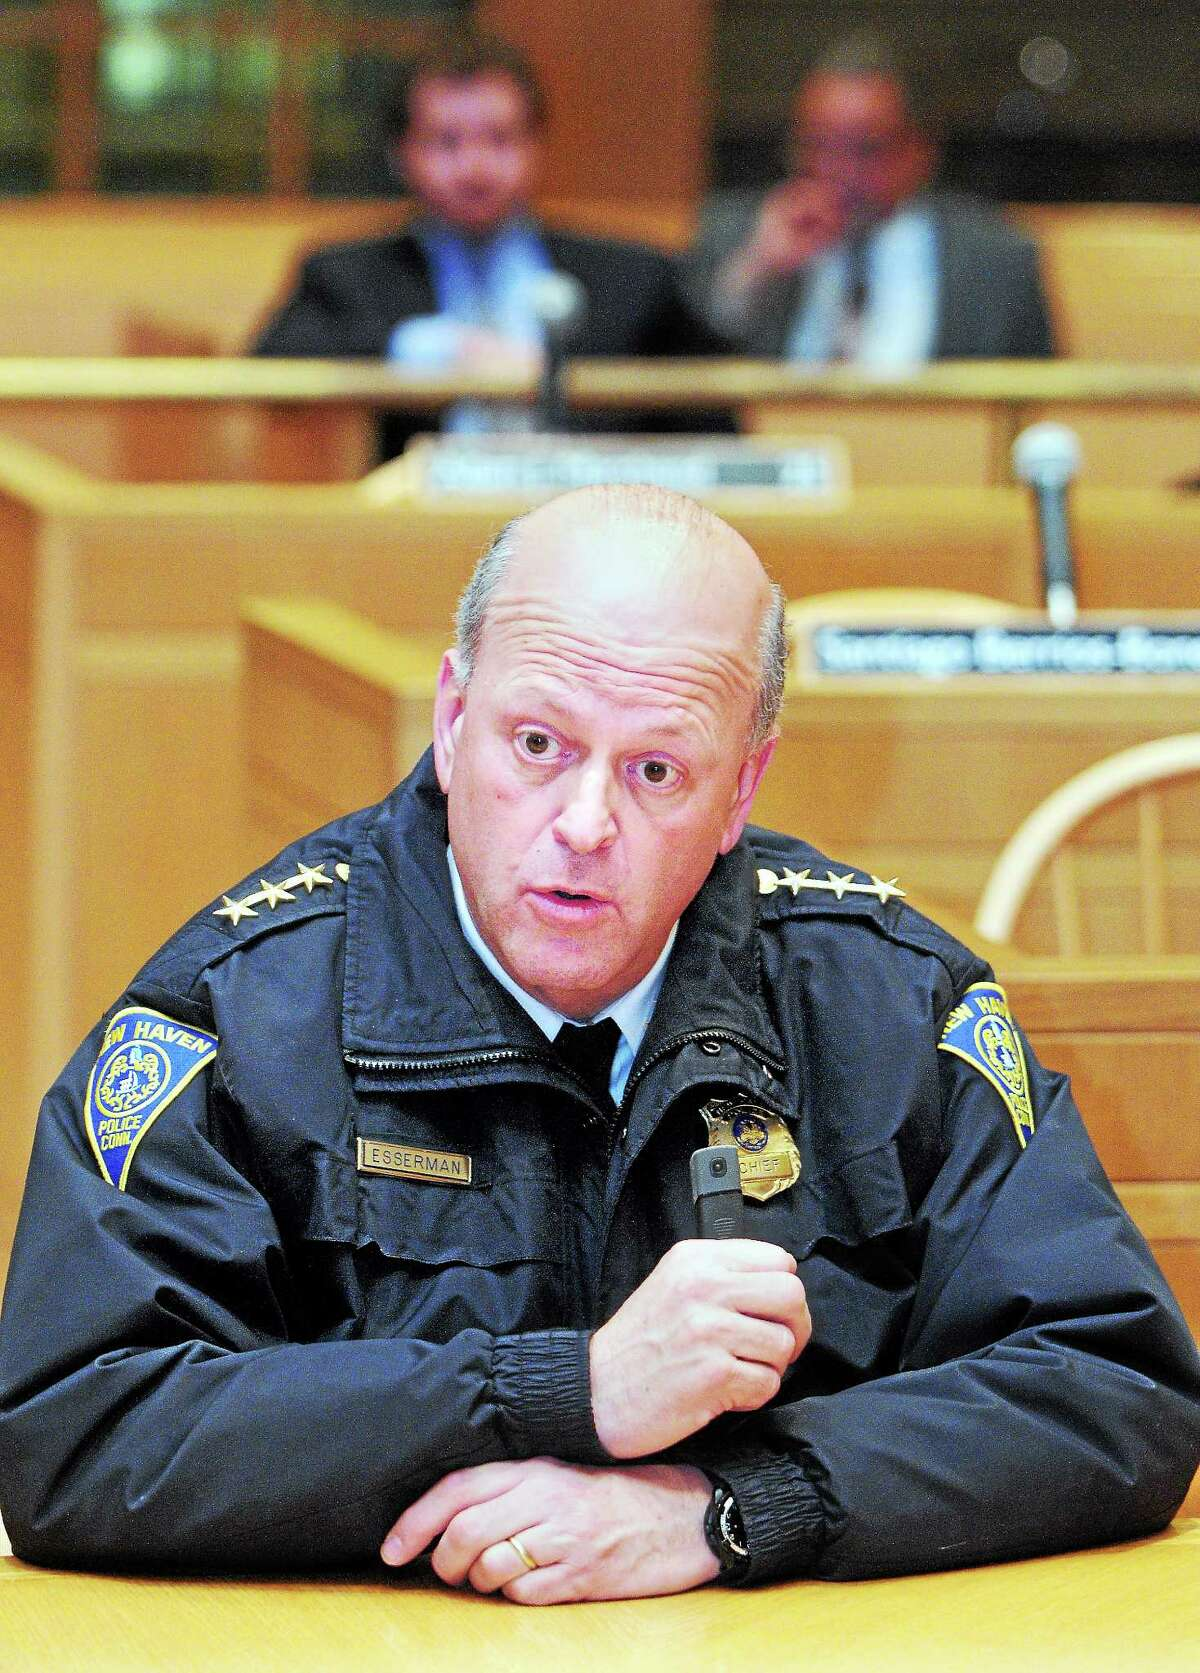 New Haven Police Chief Dean Esserman appears before the Aldermanic Affairs Committee at City Hall in New Haven Monday. Esserman explained his goals for the department in the coming years should he be reappointed chief, as the panel weighed whether to recommend extending his contract. See story, XX